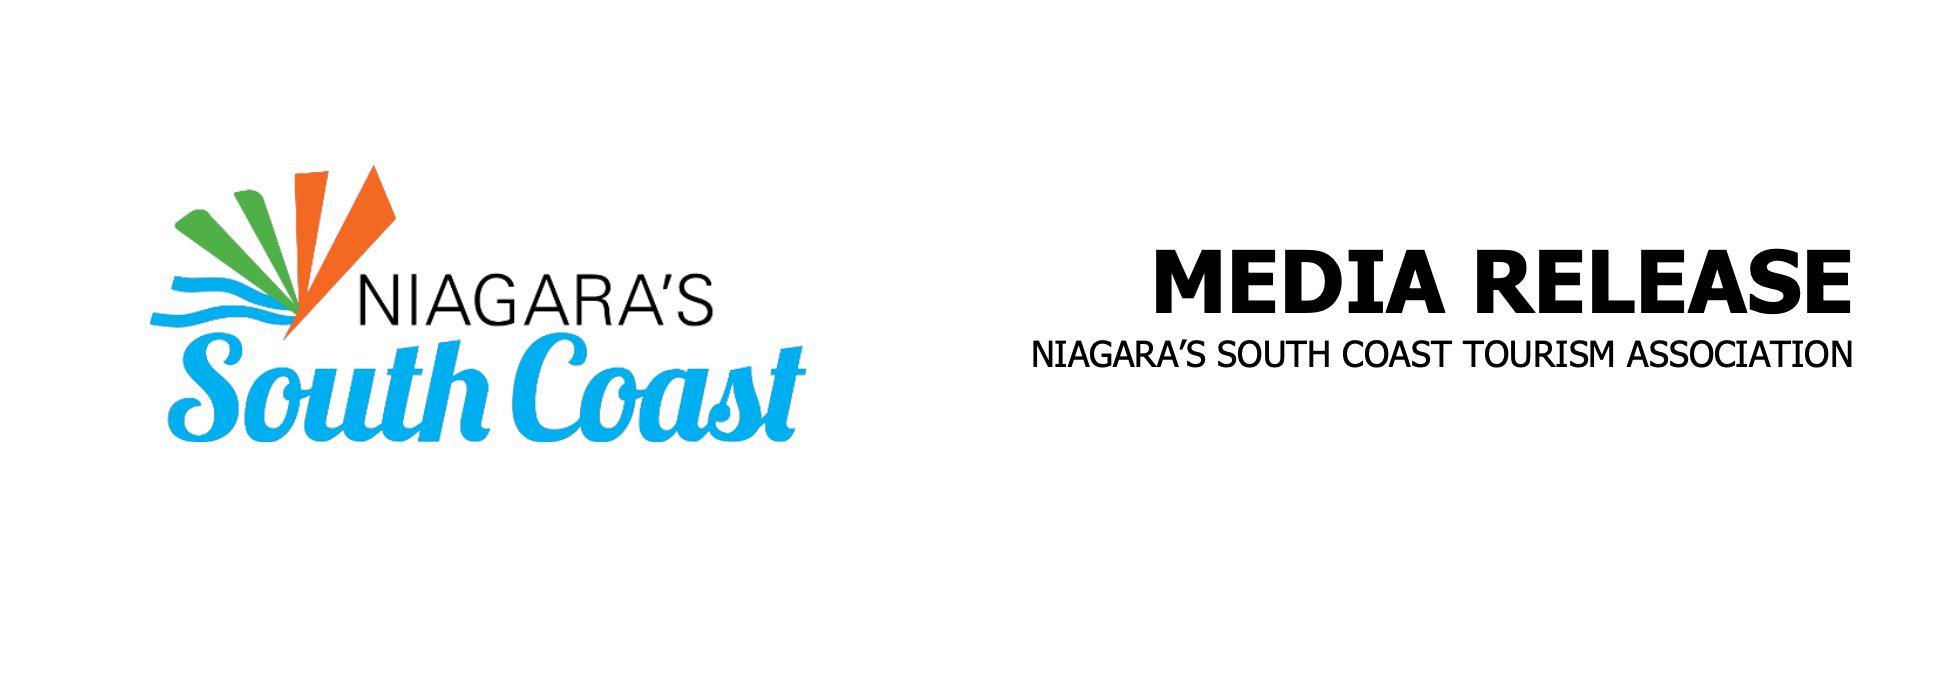 Grant provided to support local tourism in Niagara's South Coast